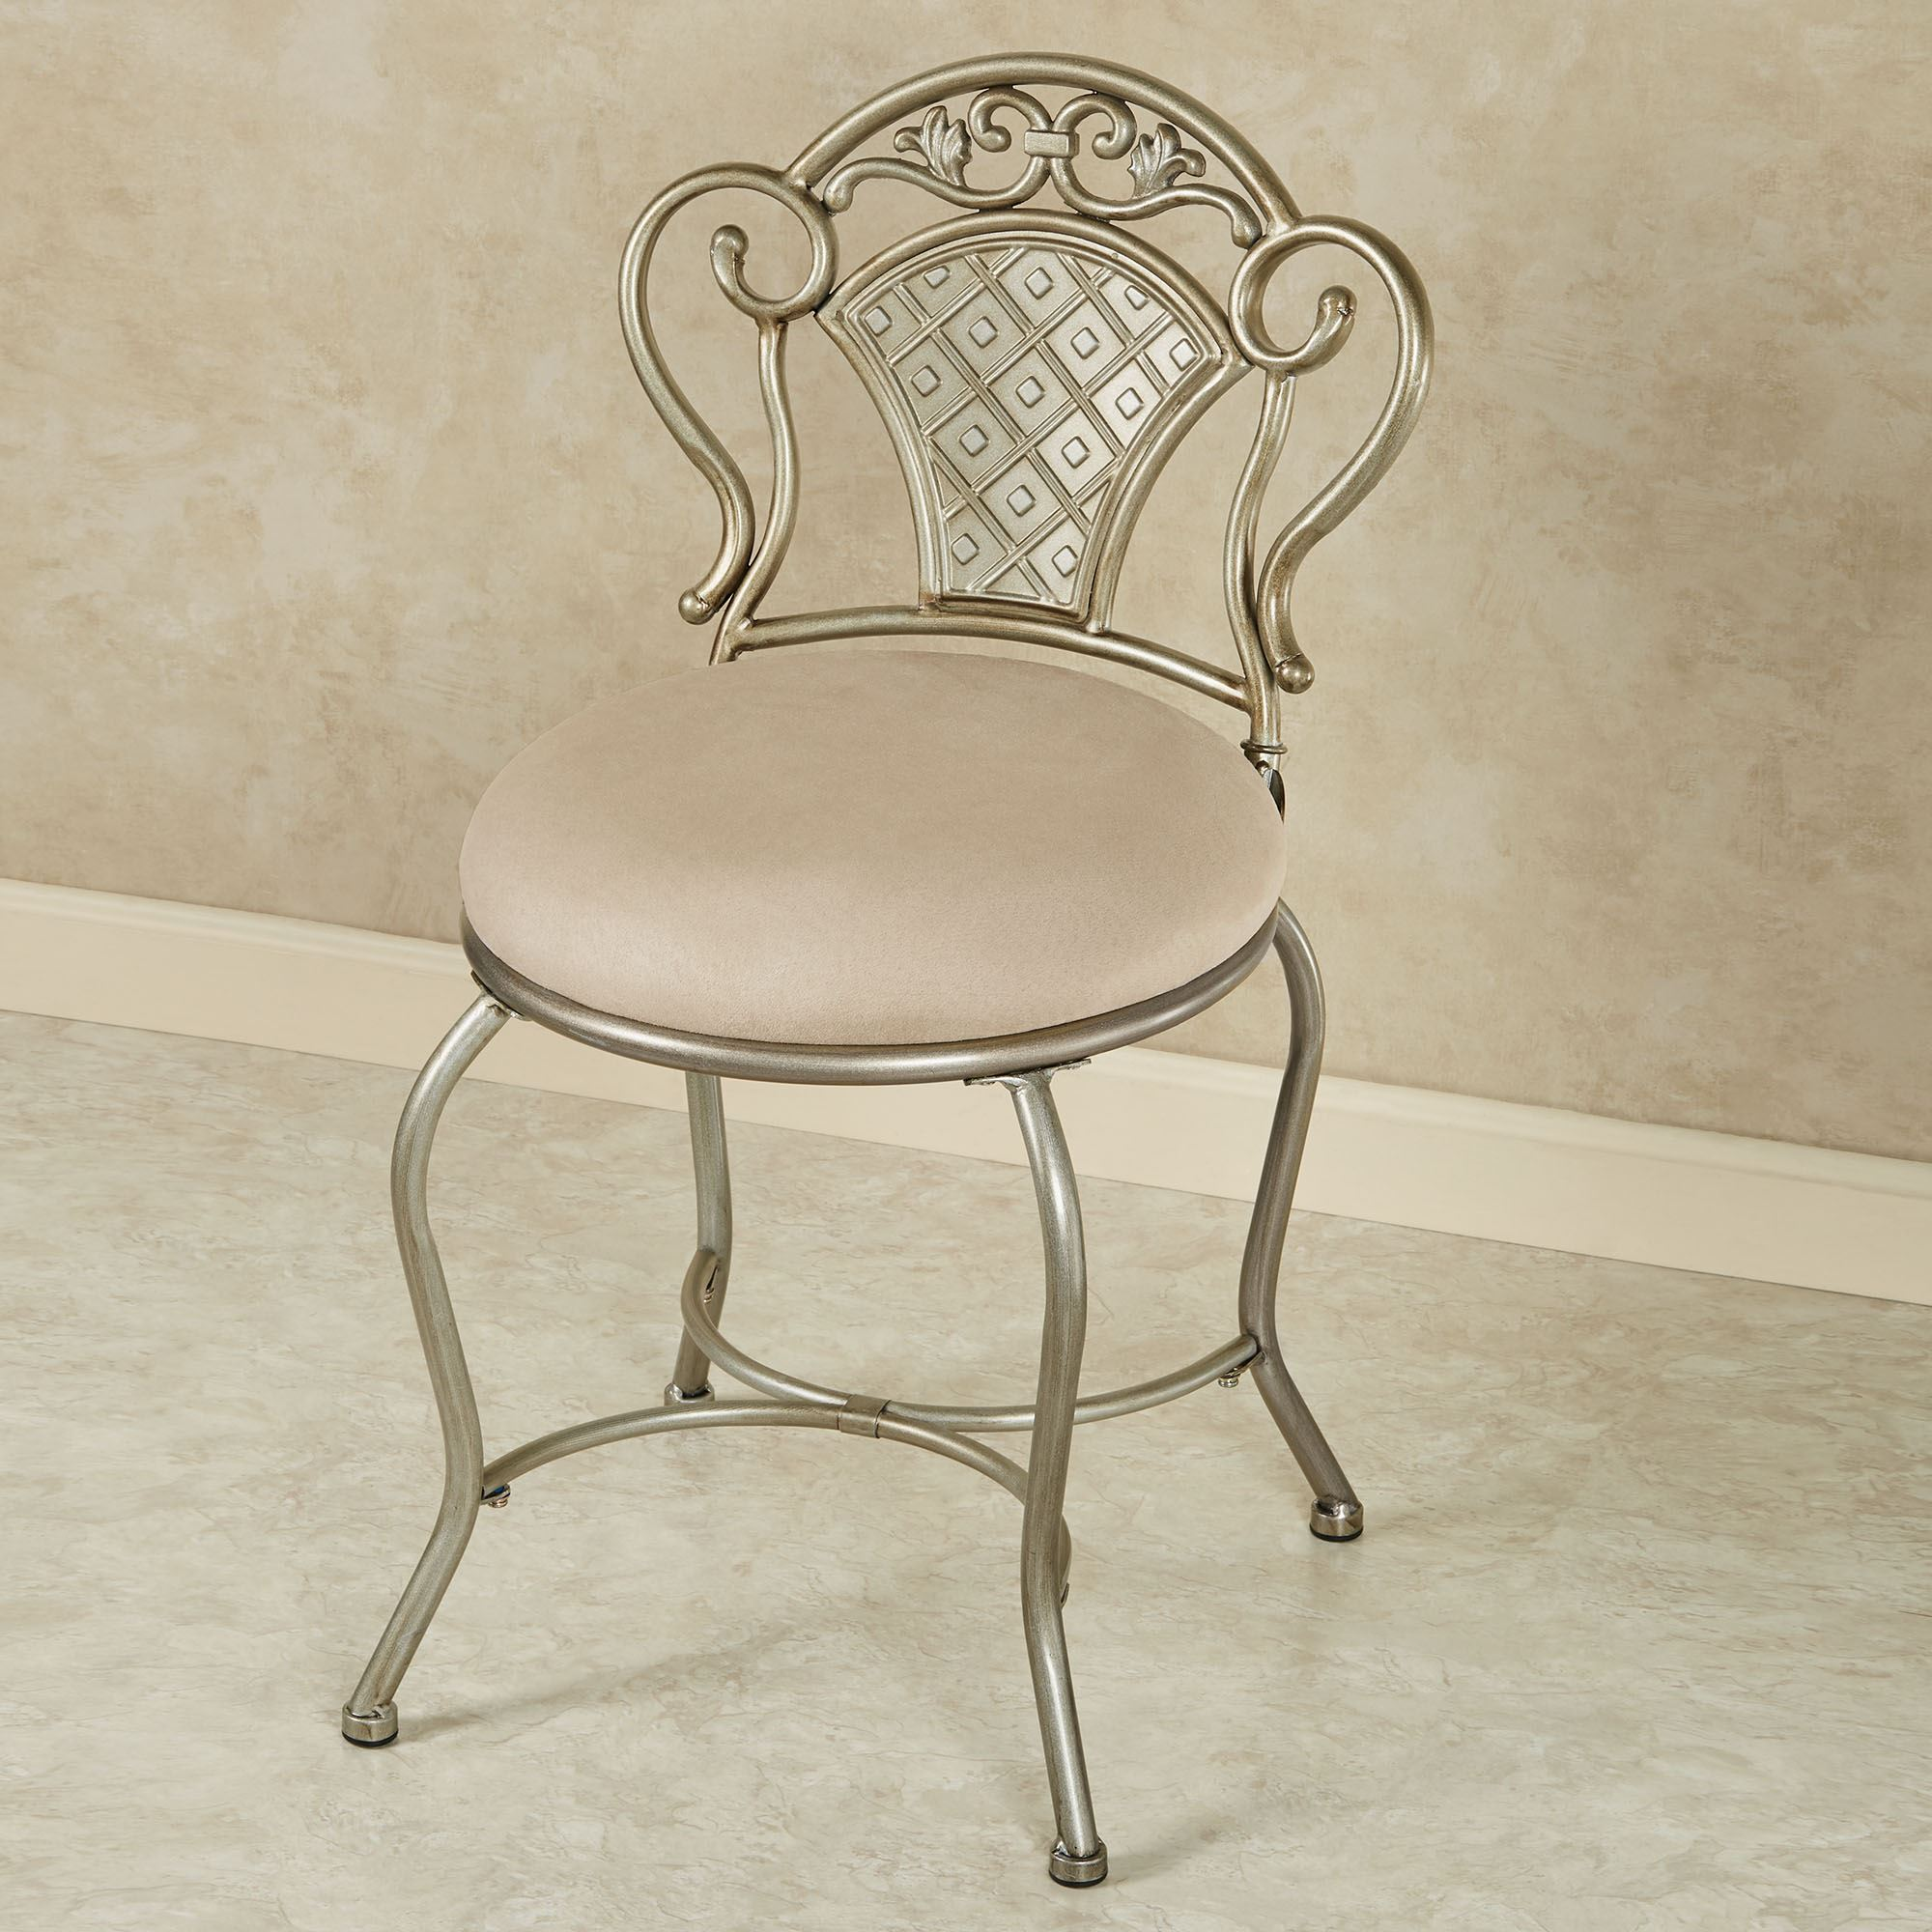 Upholstered Vanity Chair Claira Platinum Upholstered Vanity Chair